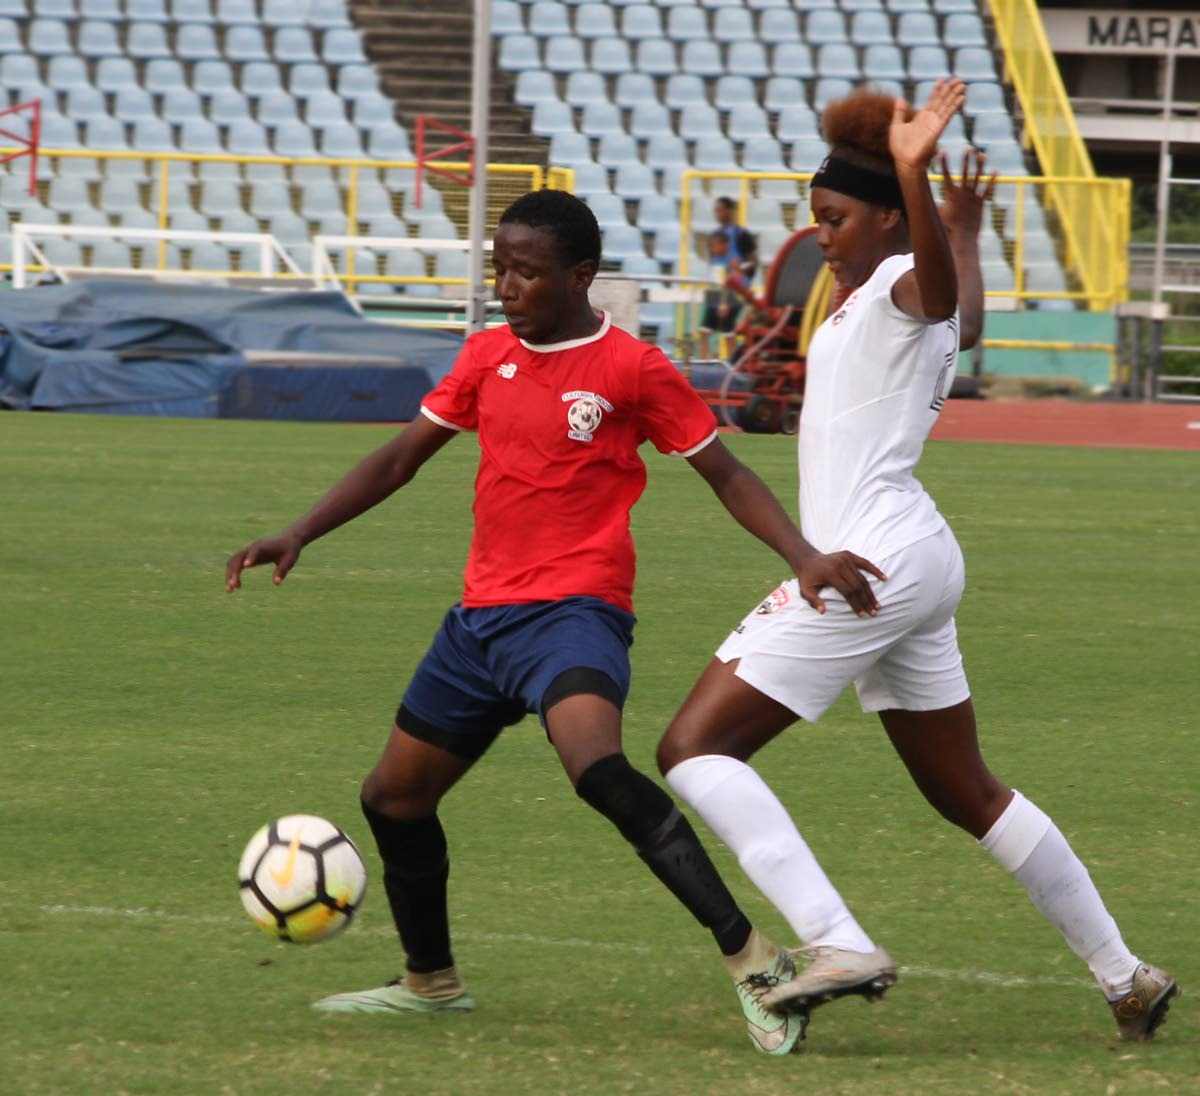 Trinidad and Tobago women's Under-20 player Kedie Johnson, right, defends as Jamal Durant of a North Under-15 boys team shields the ball in a practice match held recently at the Hasely Crawford Stadium, Mucurapo.